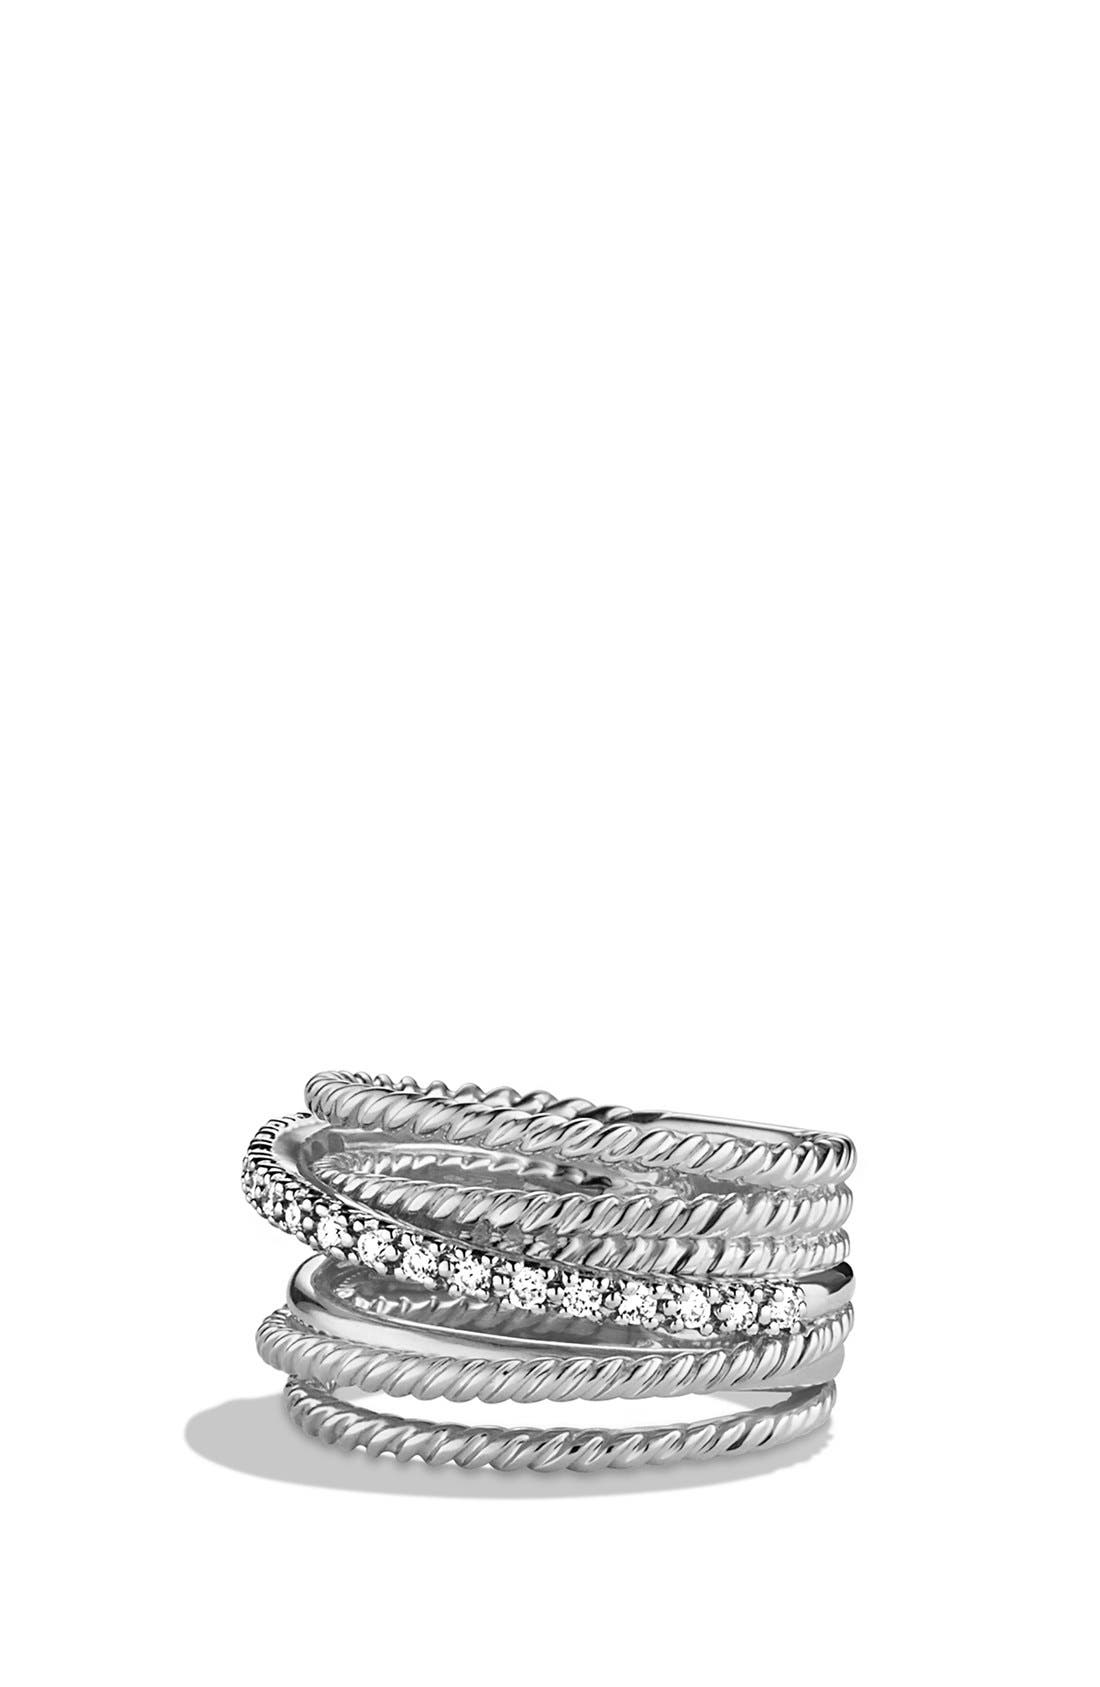 'Crossover' Wide Ring with Diamonds,                             Main thumbnail 1, color,                             DIAMOND